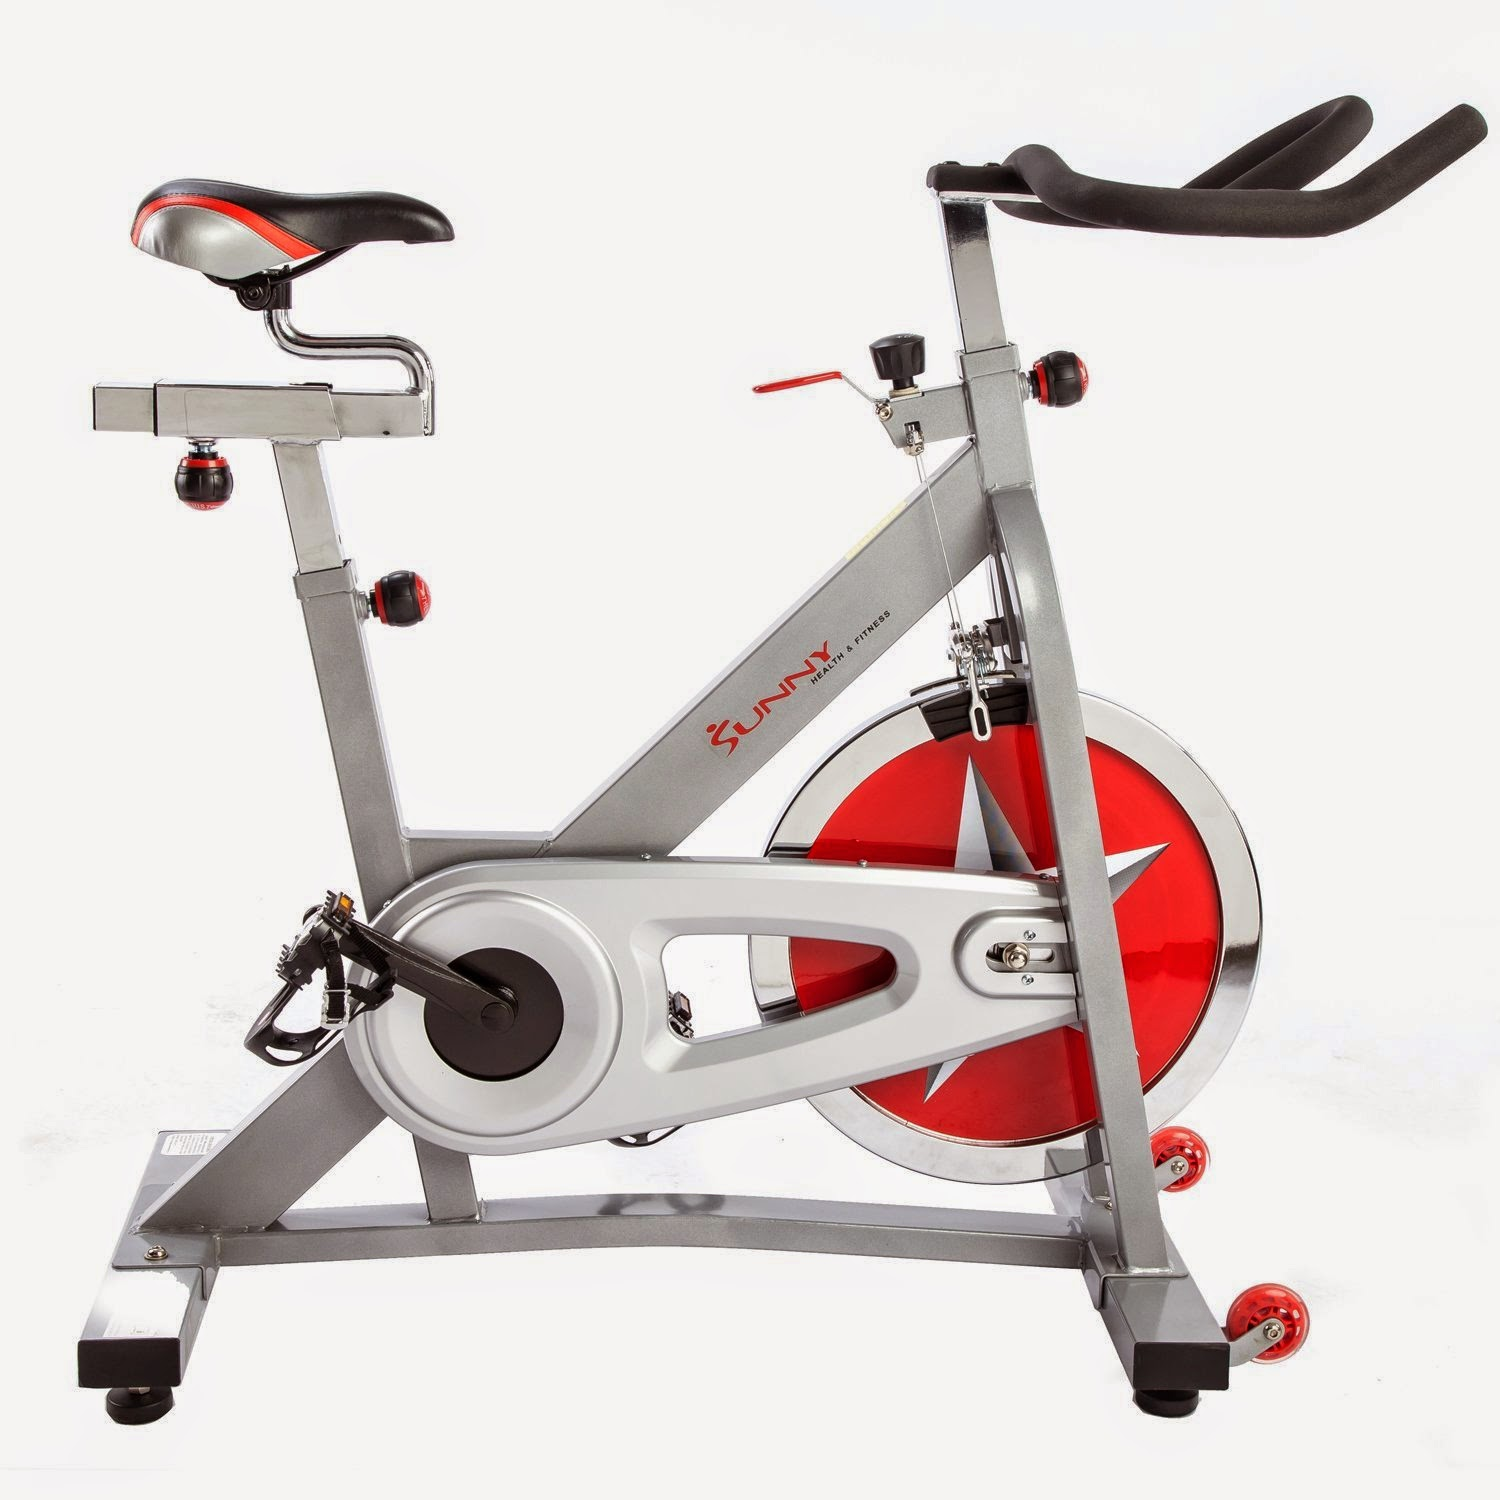 Sunny Health & Fitness SF-B901 Pro Indoor Cycling Bike, review plus compare with SF-B1001, heavier flywheel, more stable heavier frame